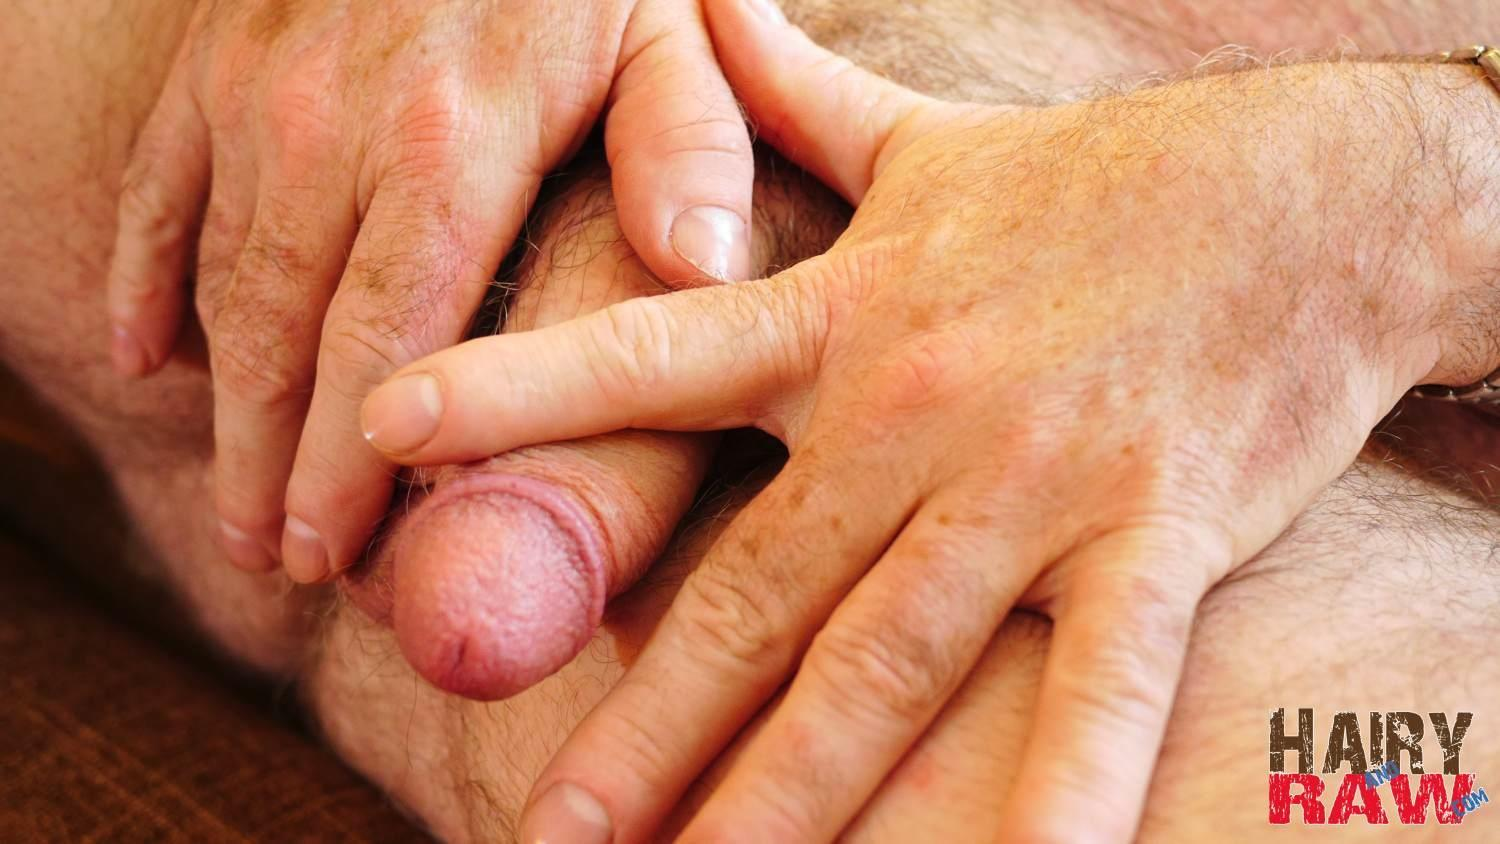 Hairy and Raw Bo Francis Suited Chubby Hairy Daddy Jerking Off Thick Cock Twink Jerking Off And Eating His Own Cum Amateur Gay Porn 11 Suit and Tie Hairy Chubby Businessman Jerking His Hairy Cock